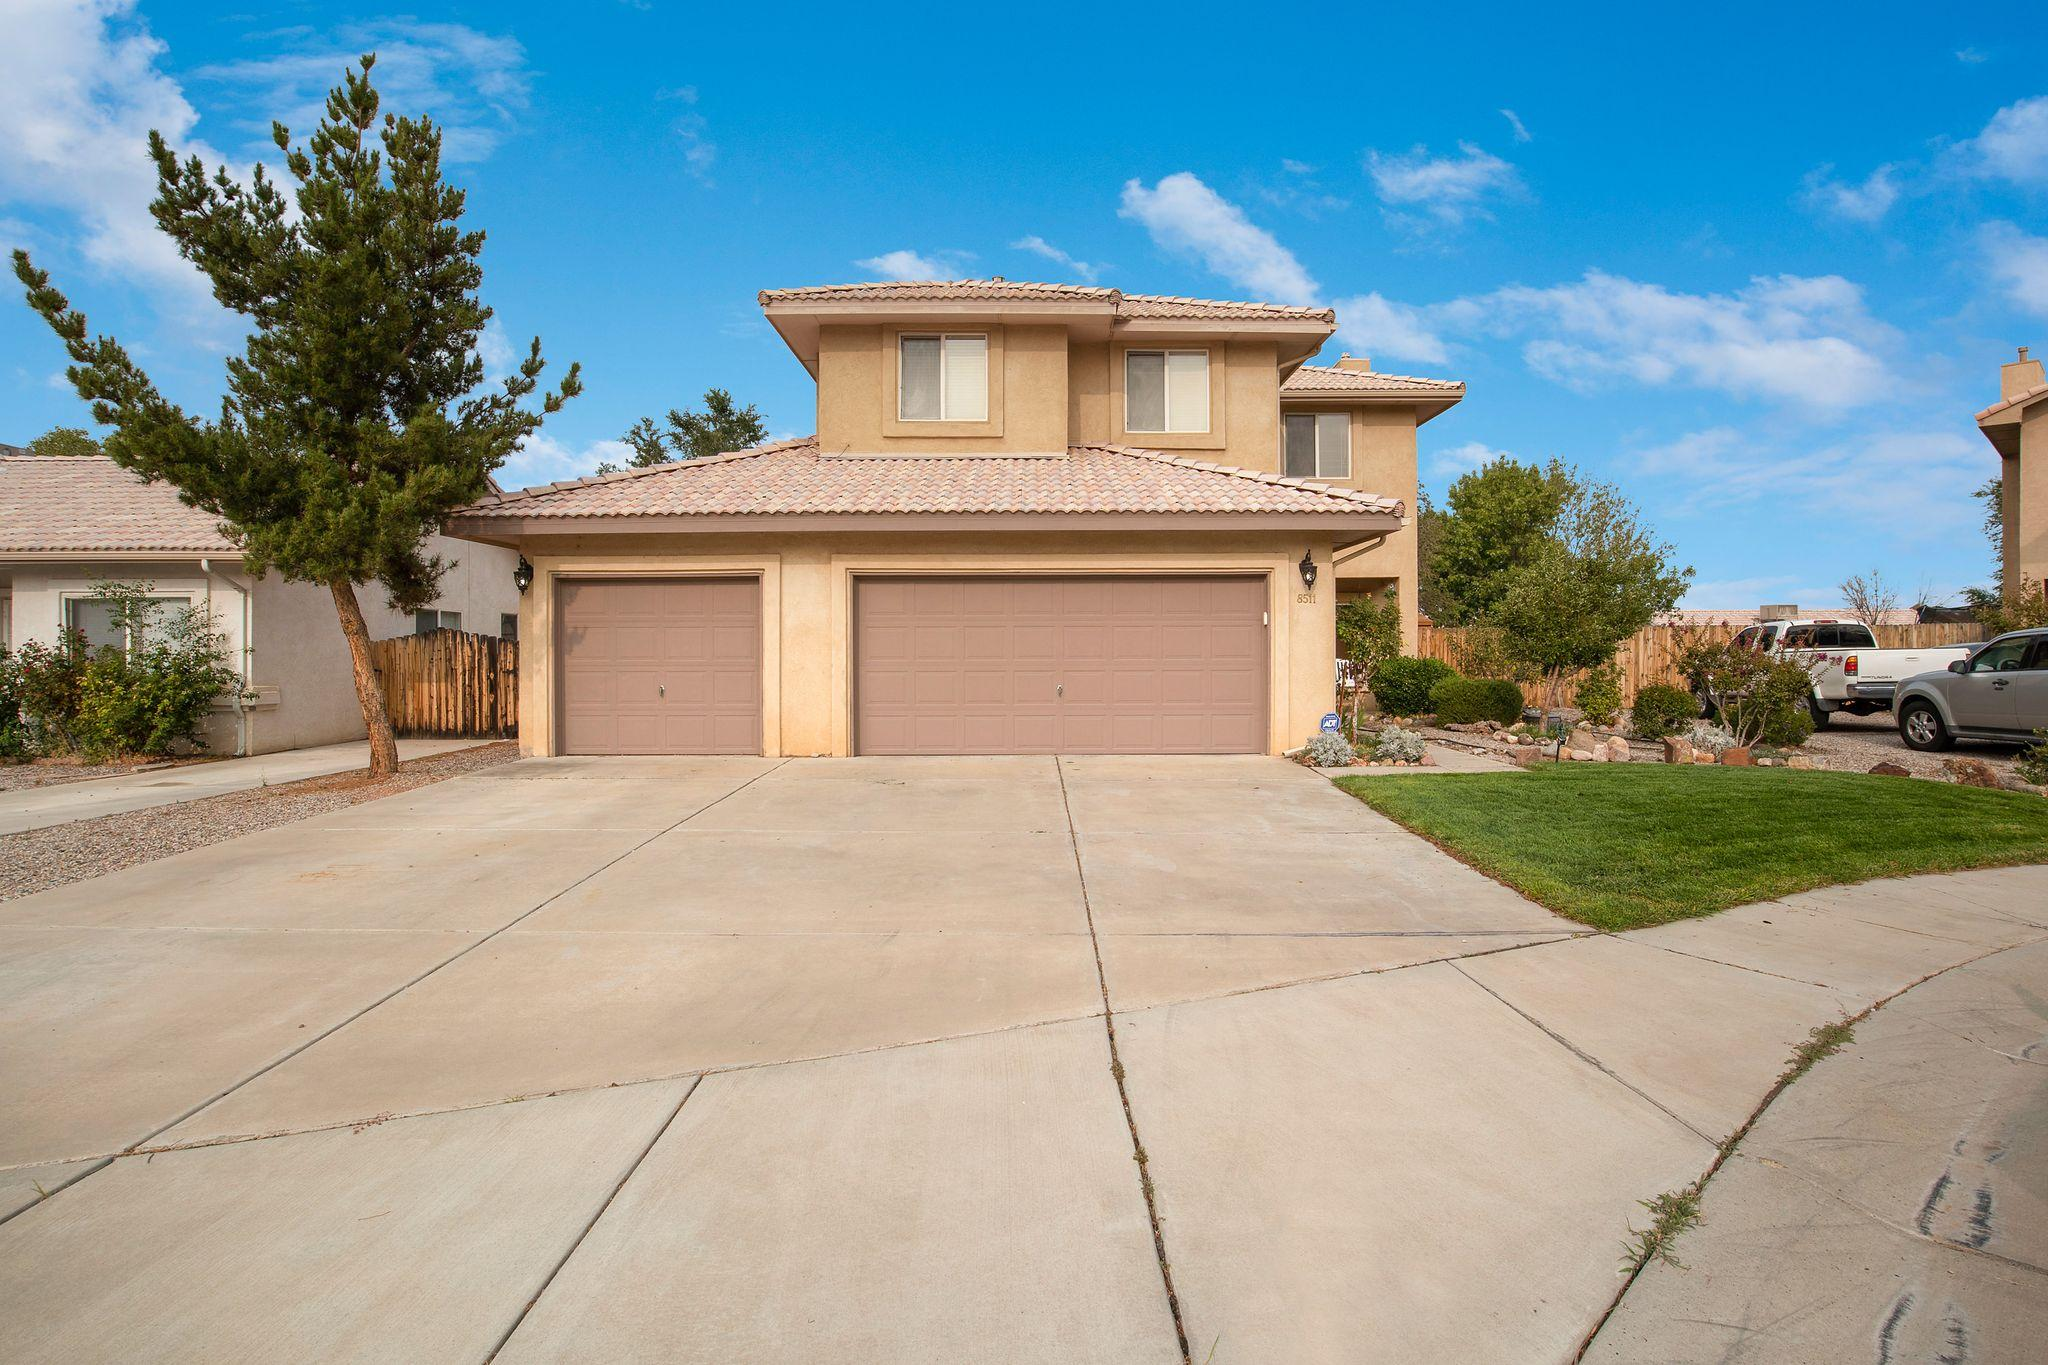 Tucked away in the Buena Vista Estates Subdivision is this beautiful gem! Boasting a lovely 4 bedroom, 2.5 bath floor plan, the home is located on a cul-de-sac within the La Cueva and Desert Ridge school districts. This home checks the boxes, come make it your new home before it's gone!!